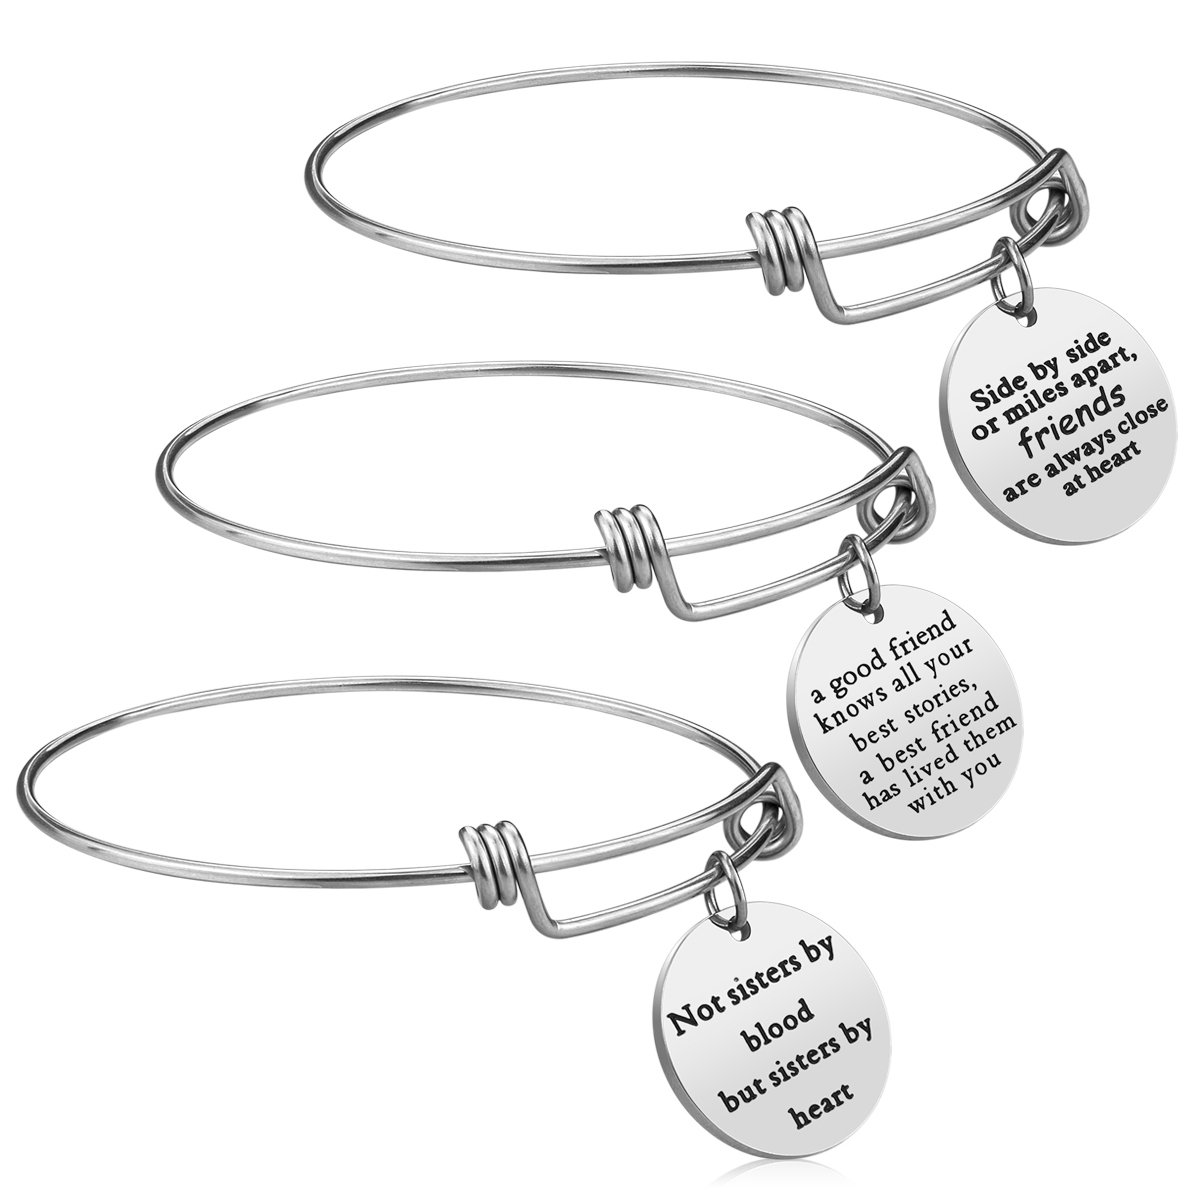 iJuqi Charm Charm Bracelet - 3 PCS Stainless Steel Expendable Inspirational Bangle Bracelets BFF Jewelry Set Graduation Gifts Birthday Gifts (3 Pcs- White)